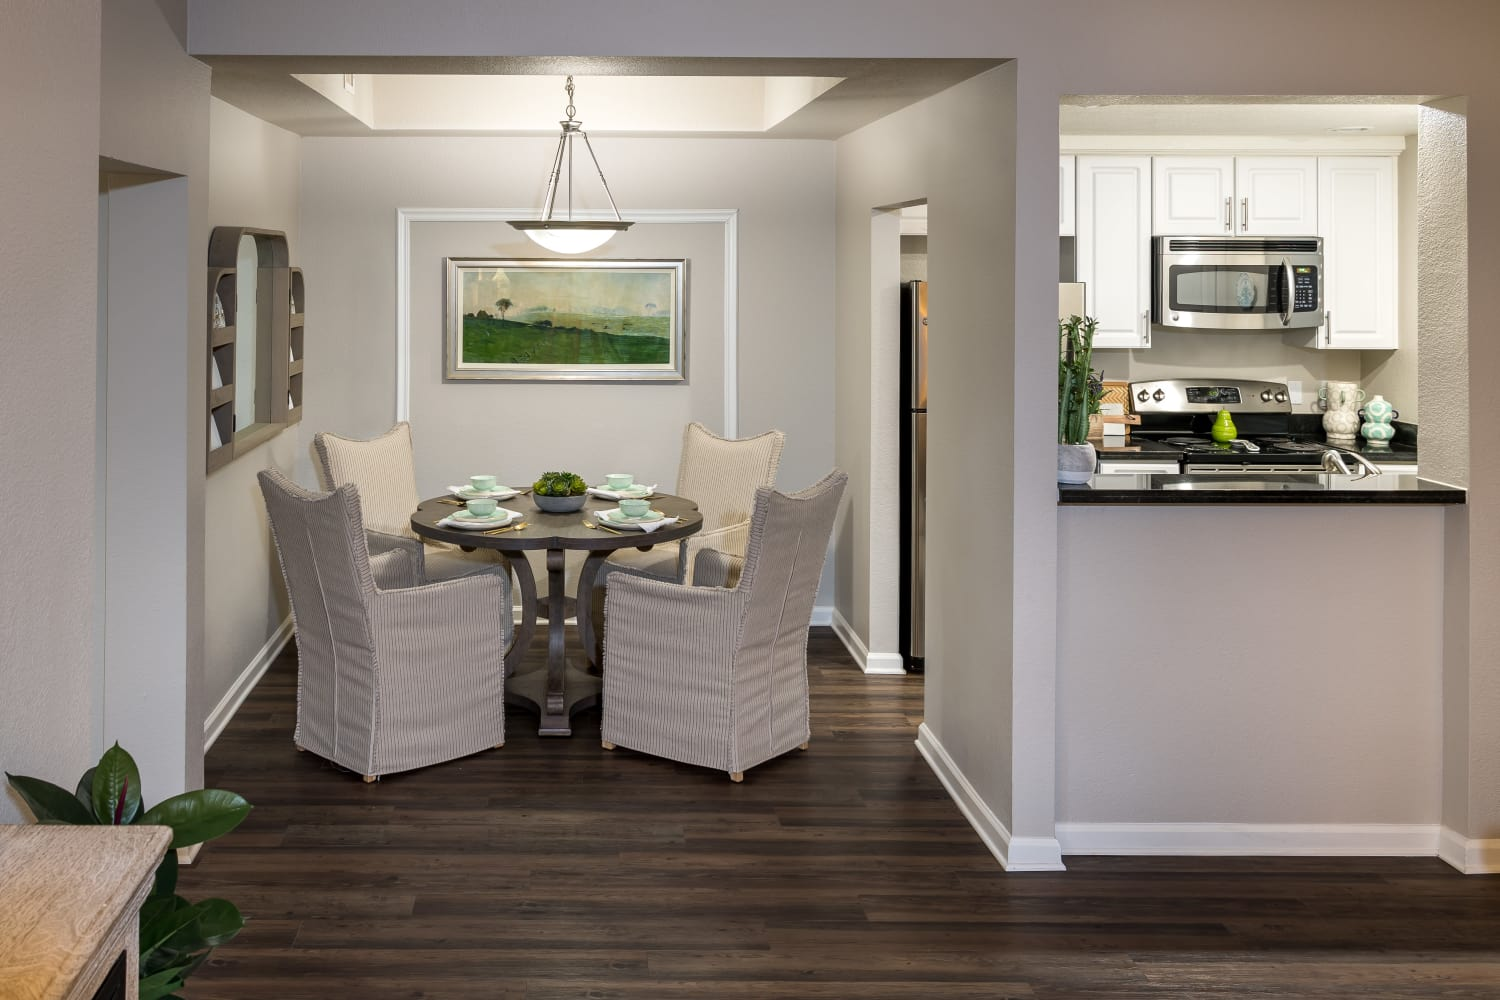 Cozy dining room at Nantucket Apartments in Santa Clara, California